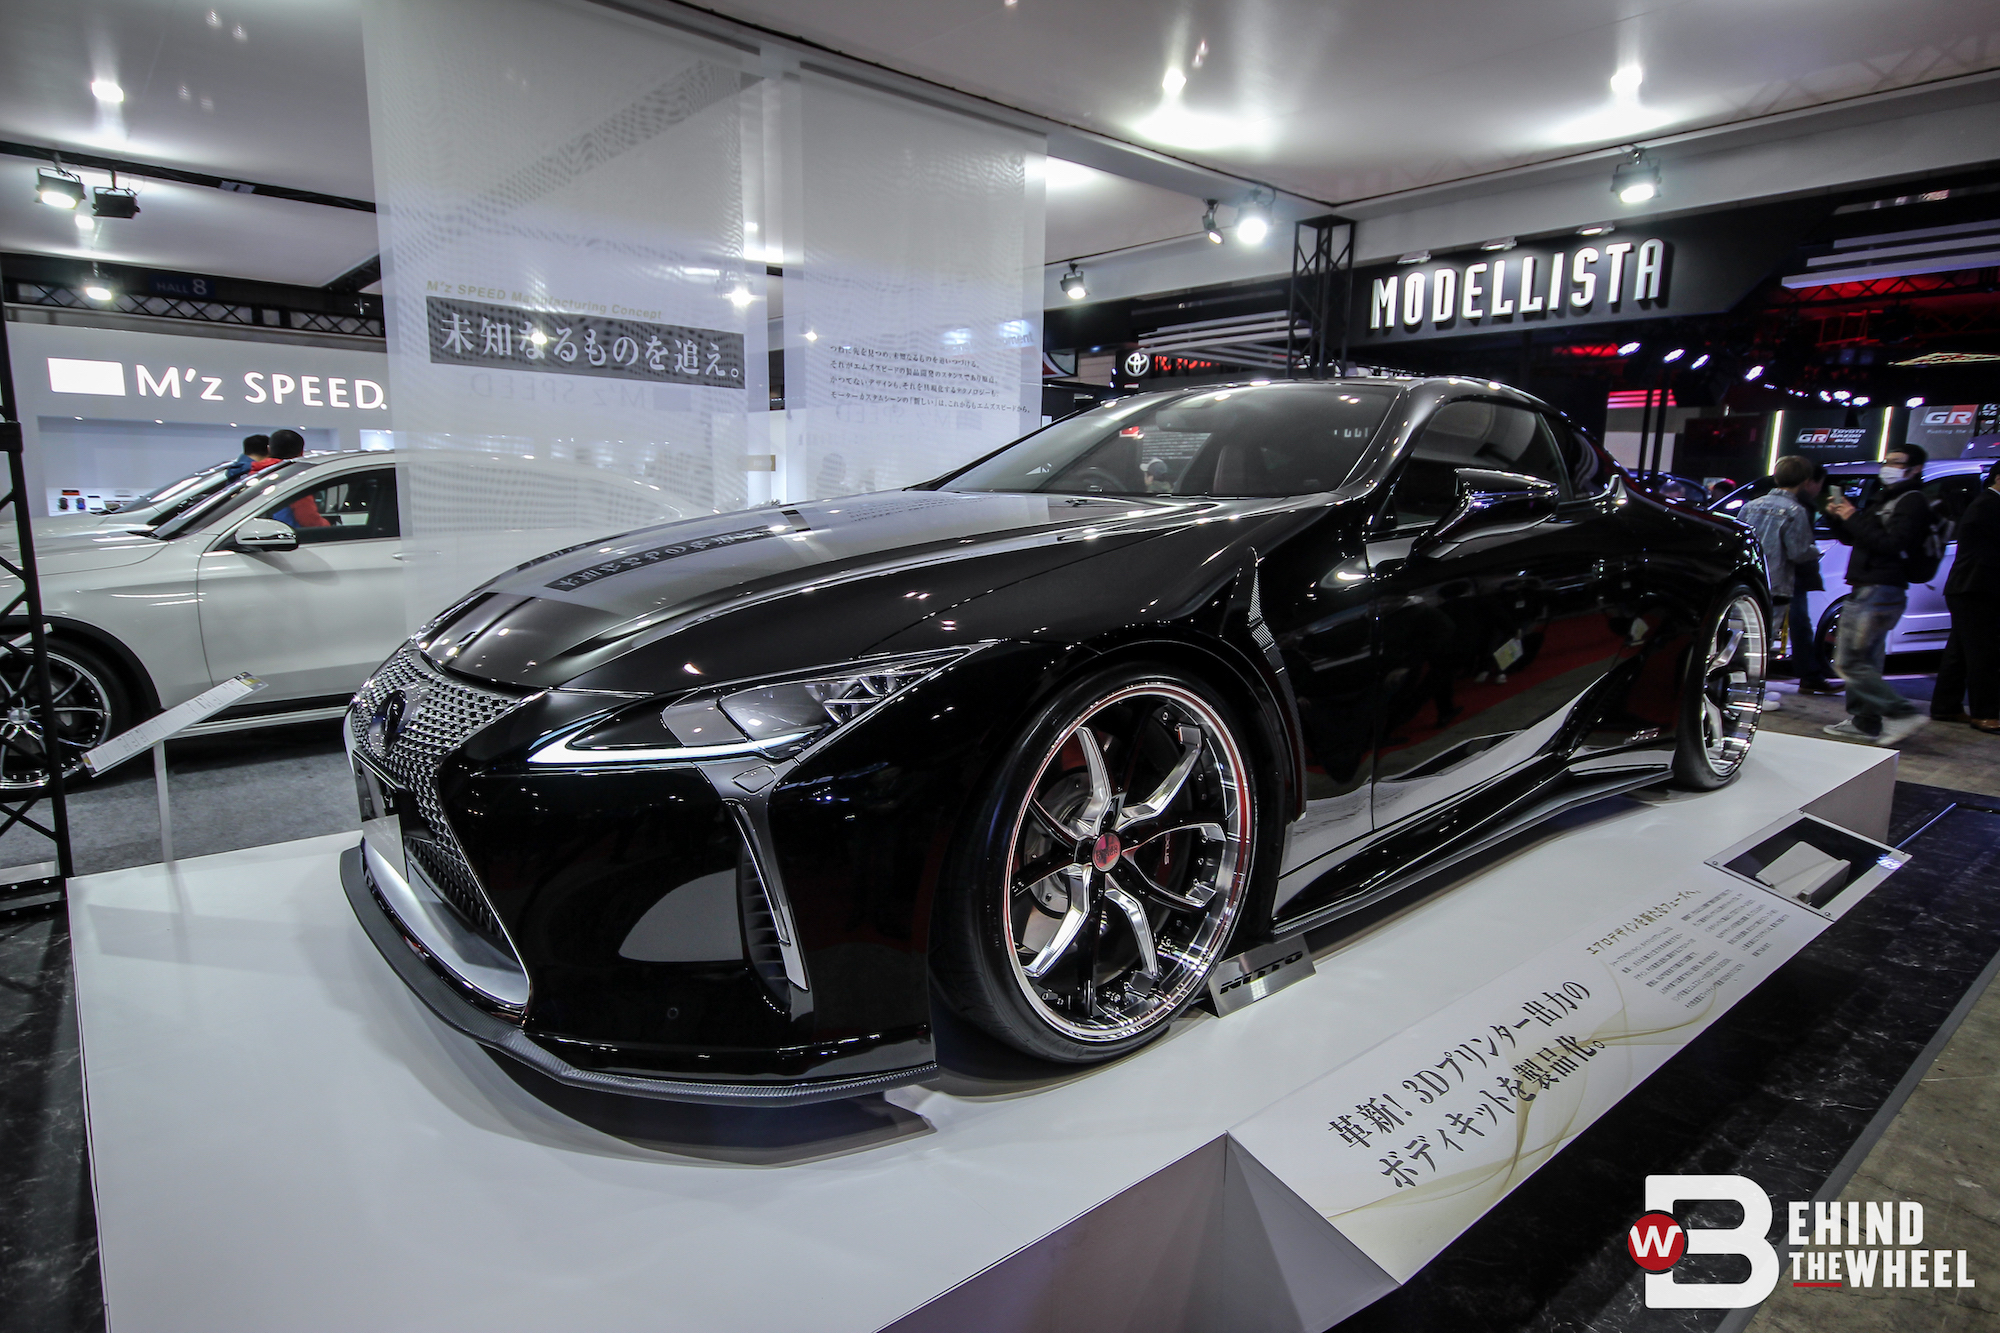 Tokyo Auto Salon A Gallery Of Aftermarket Possibility - Tokyo car show 2018